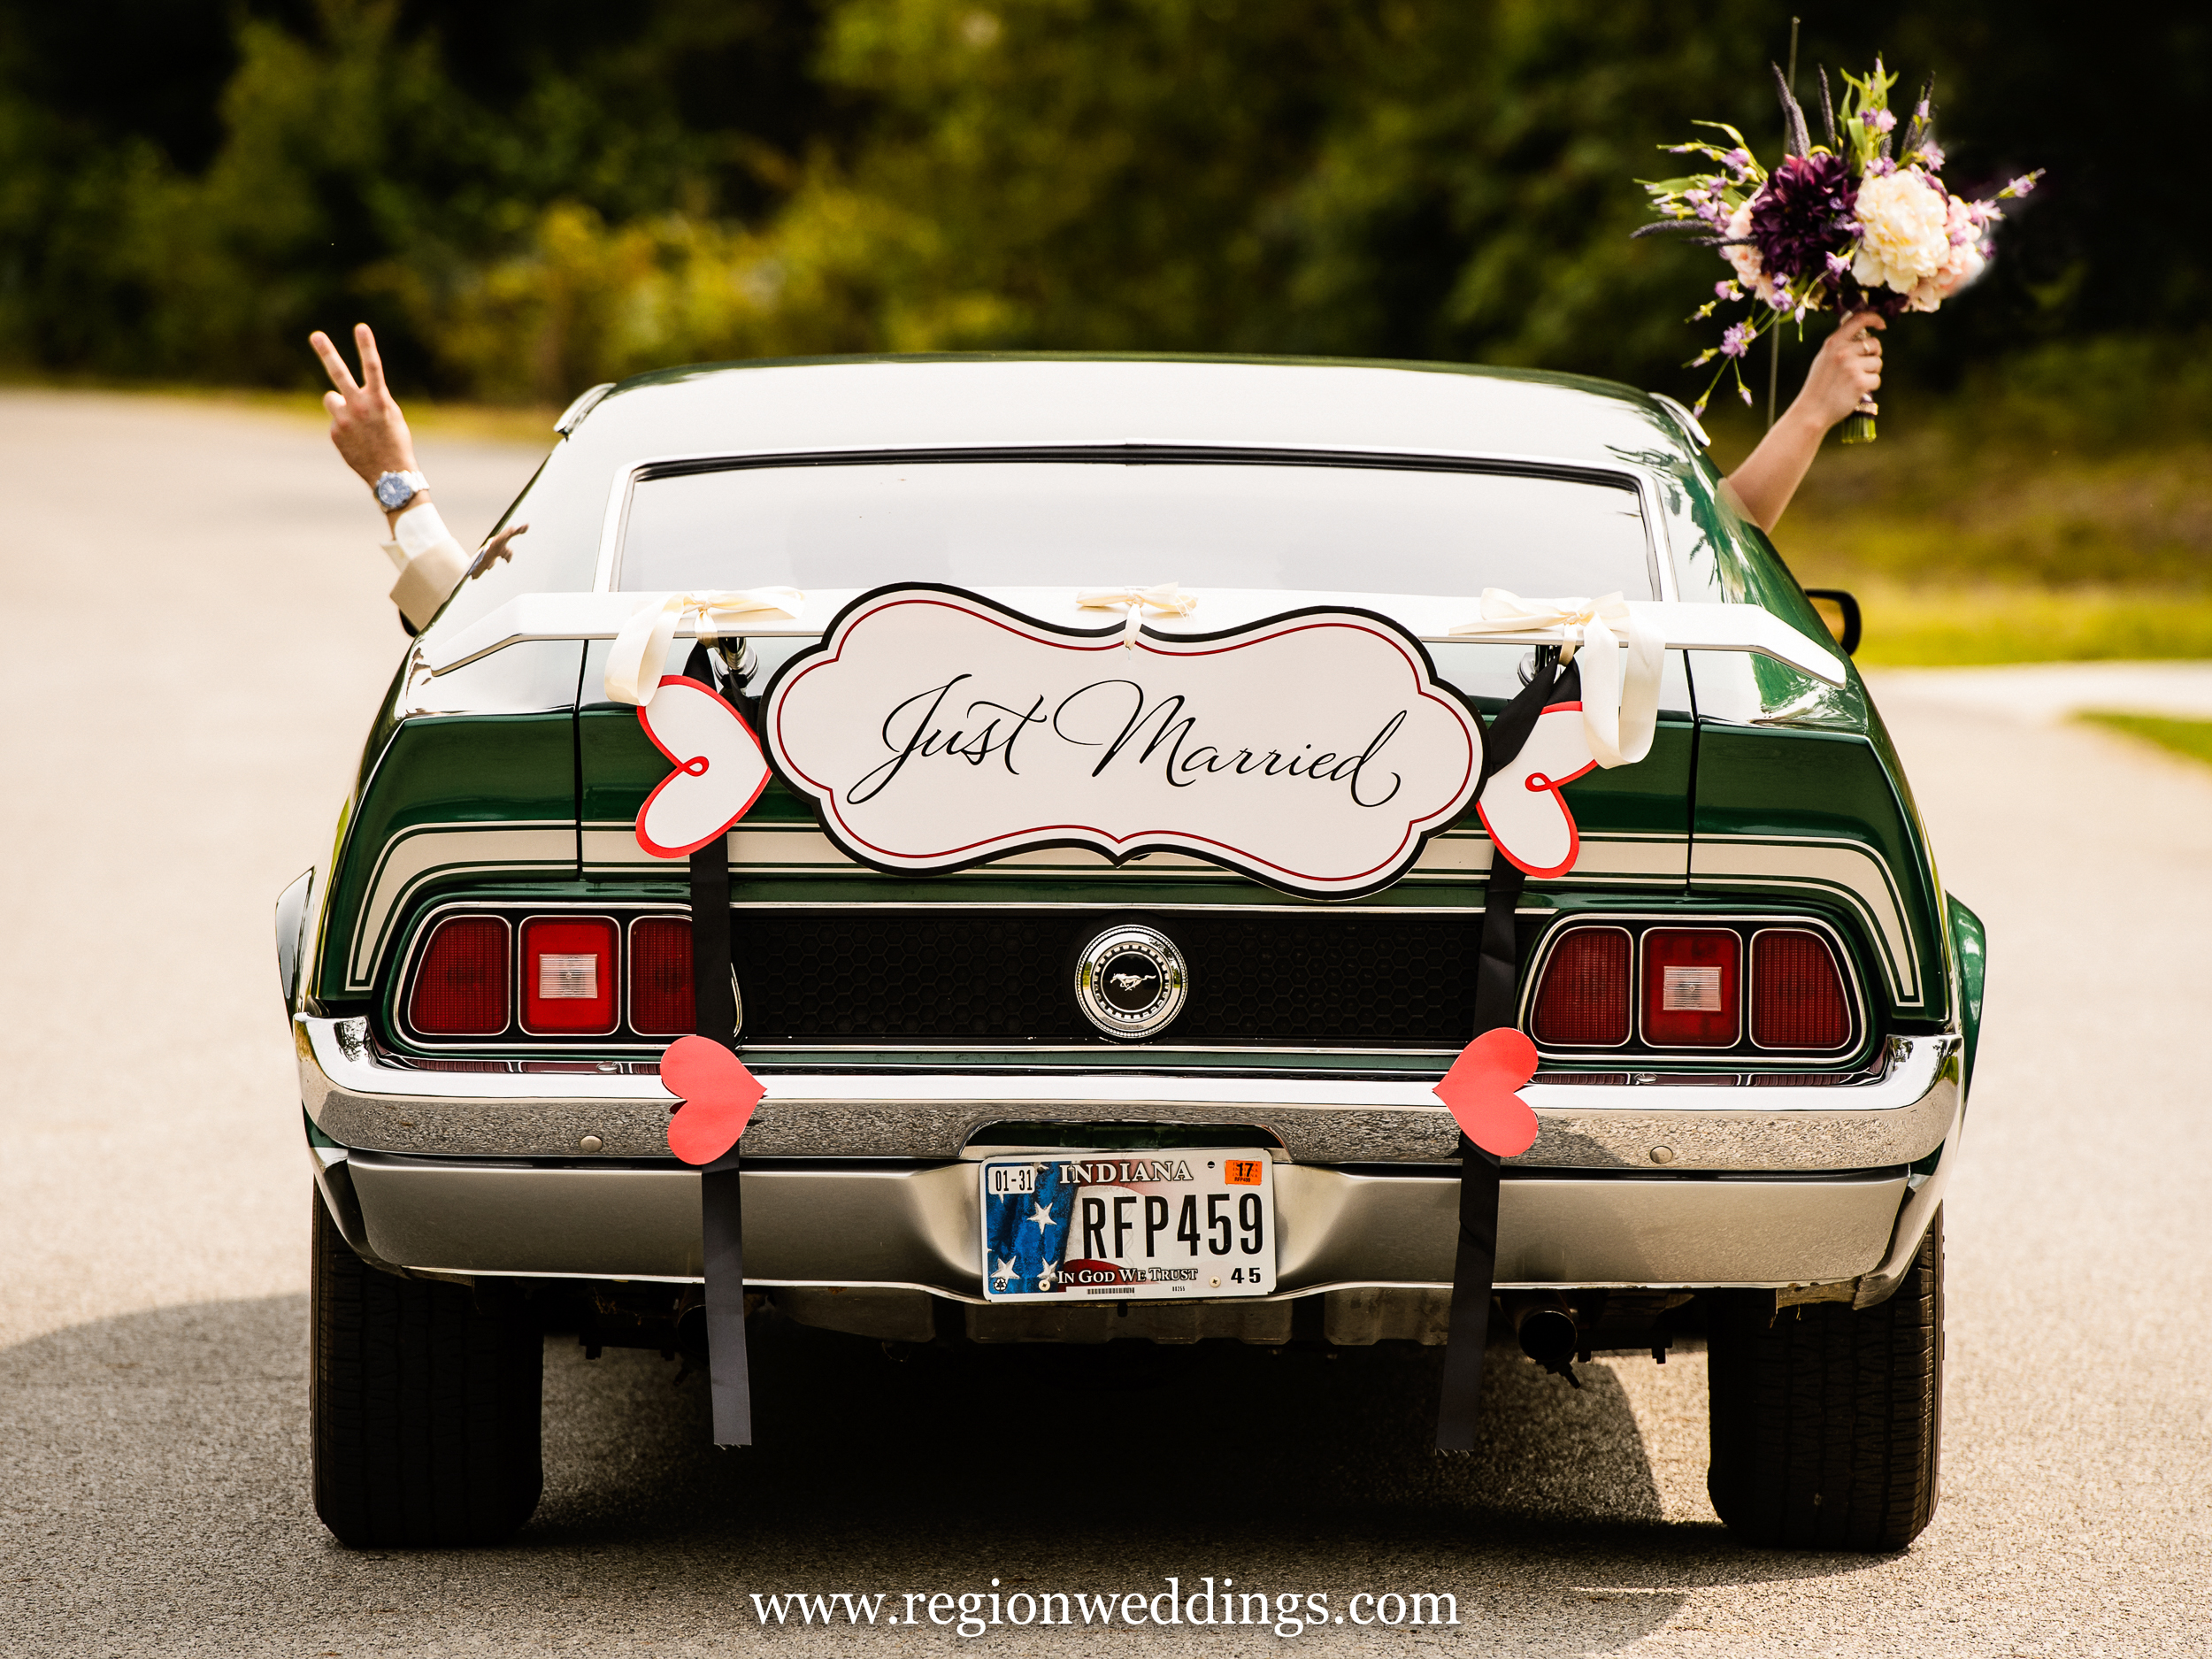 Bride and groom ride away in a classic Mustang.